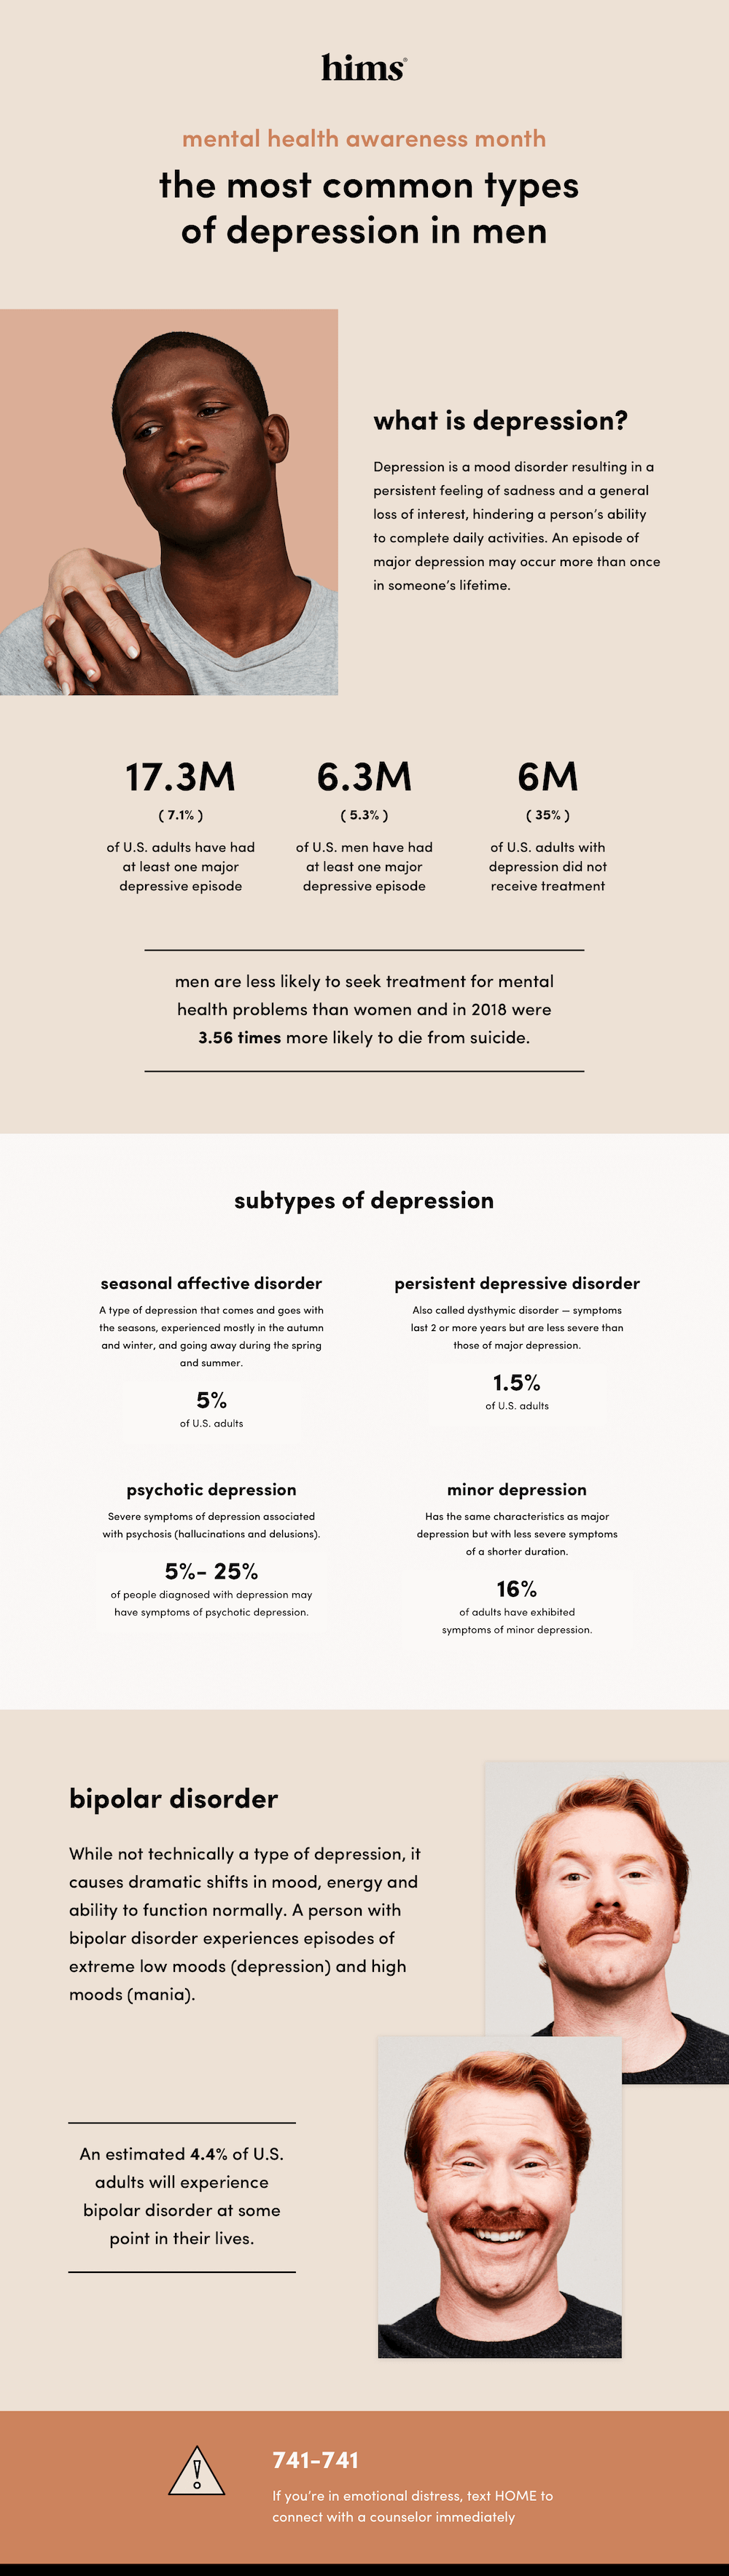 most-common-depression-types-in-men.png